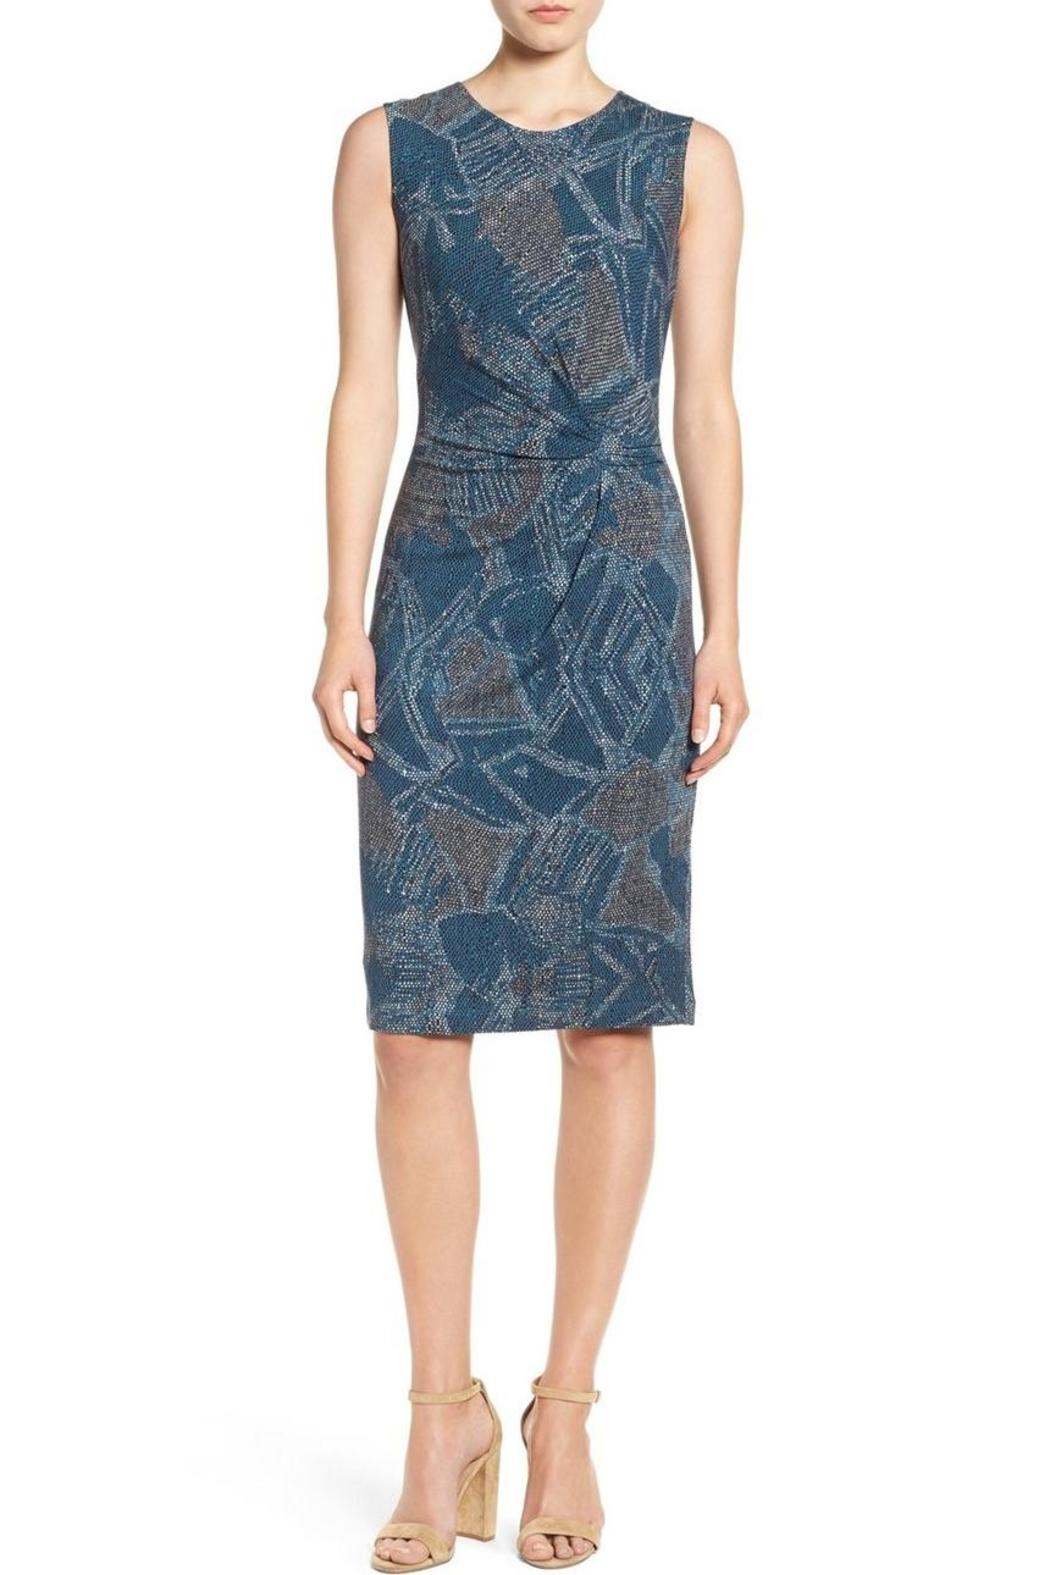 Nic + Zoe Blue Twist Dress - Front Cropped Image